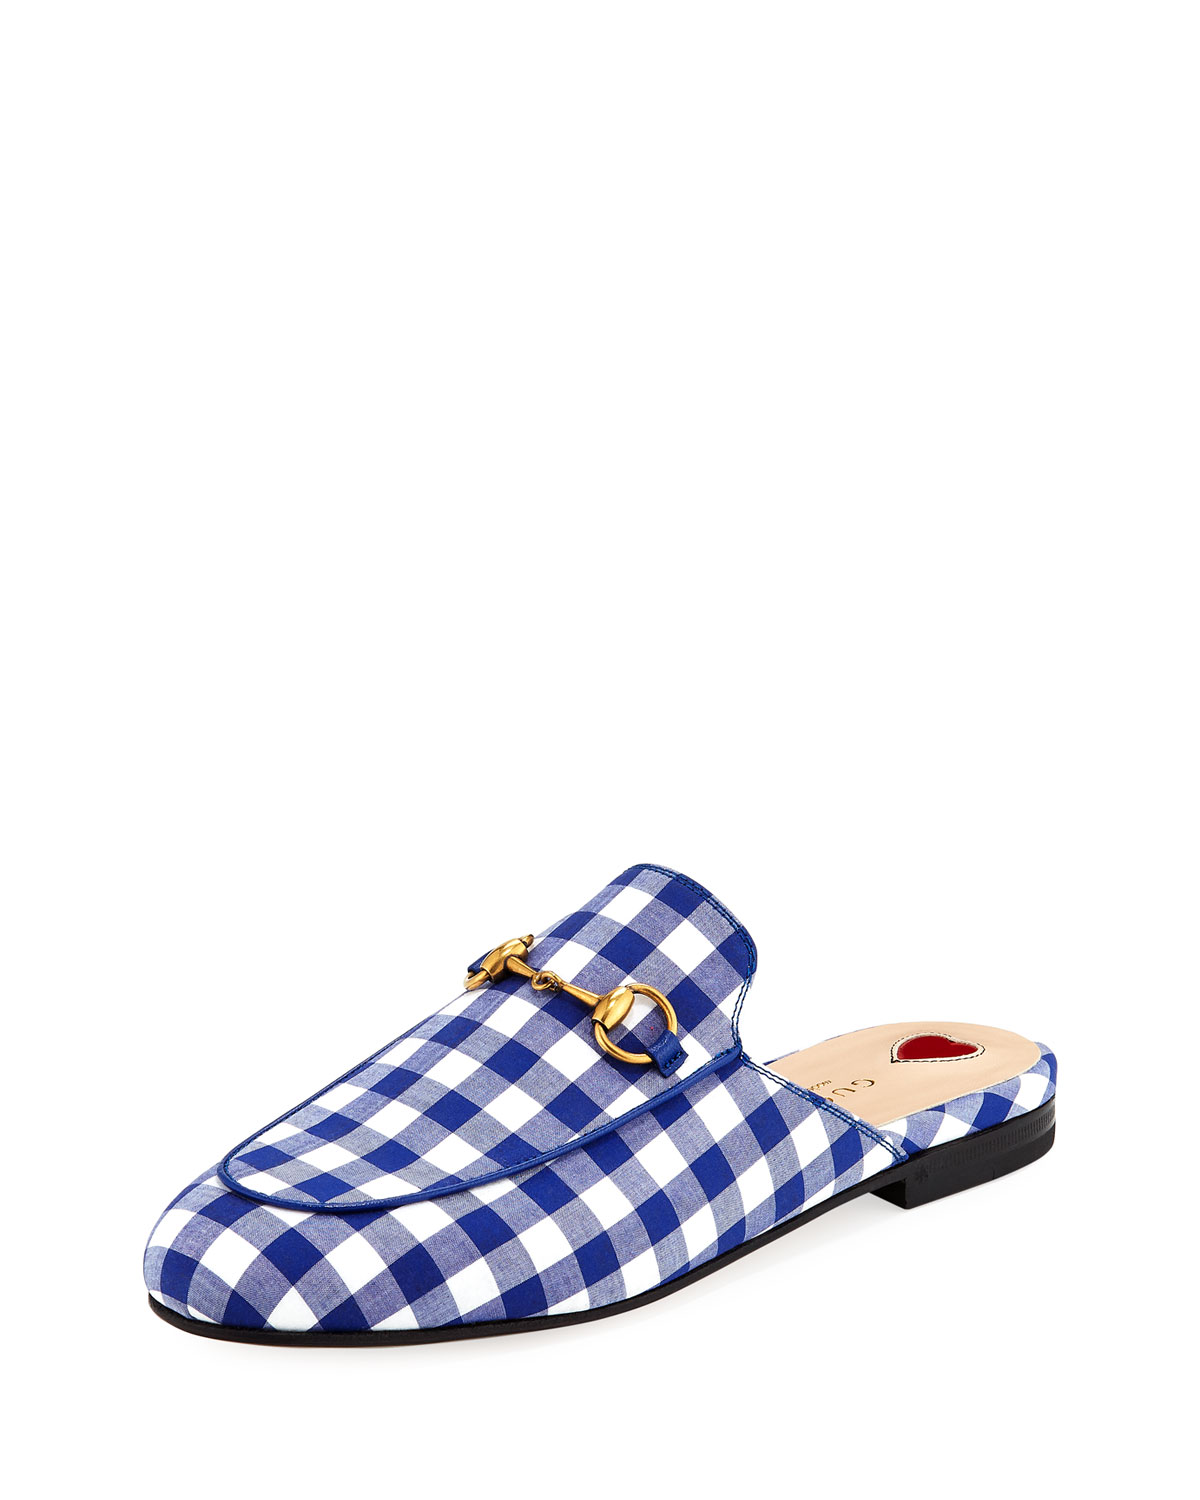 ab0528432 Gucci Flat Princetown Gingham Mule | Neiman Marcus